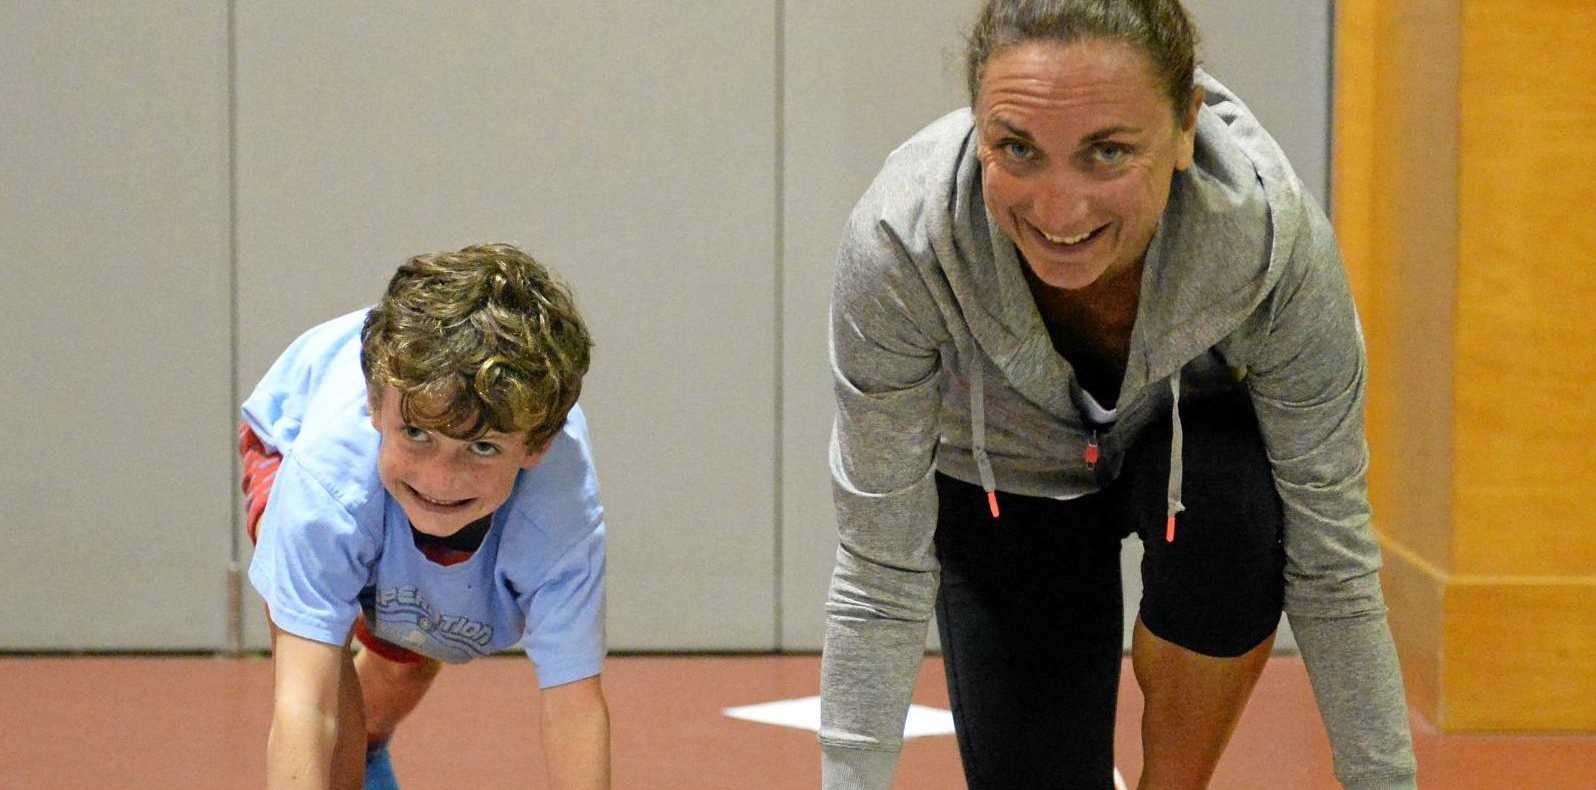 IN TRAINING: Emma Carney (right) with her son Jack, 6, who is helping at her running session, at Whitsunday Anglican School on Thursday afternoon.